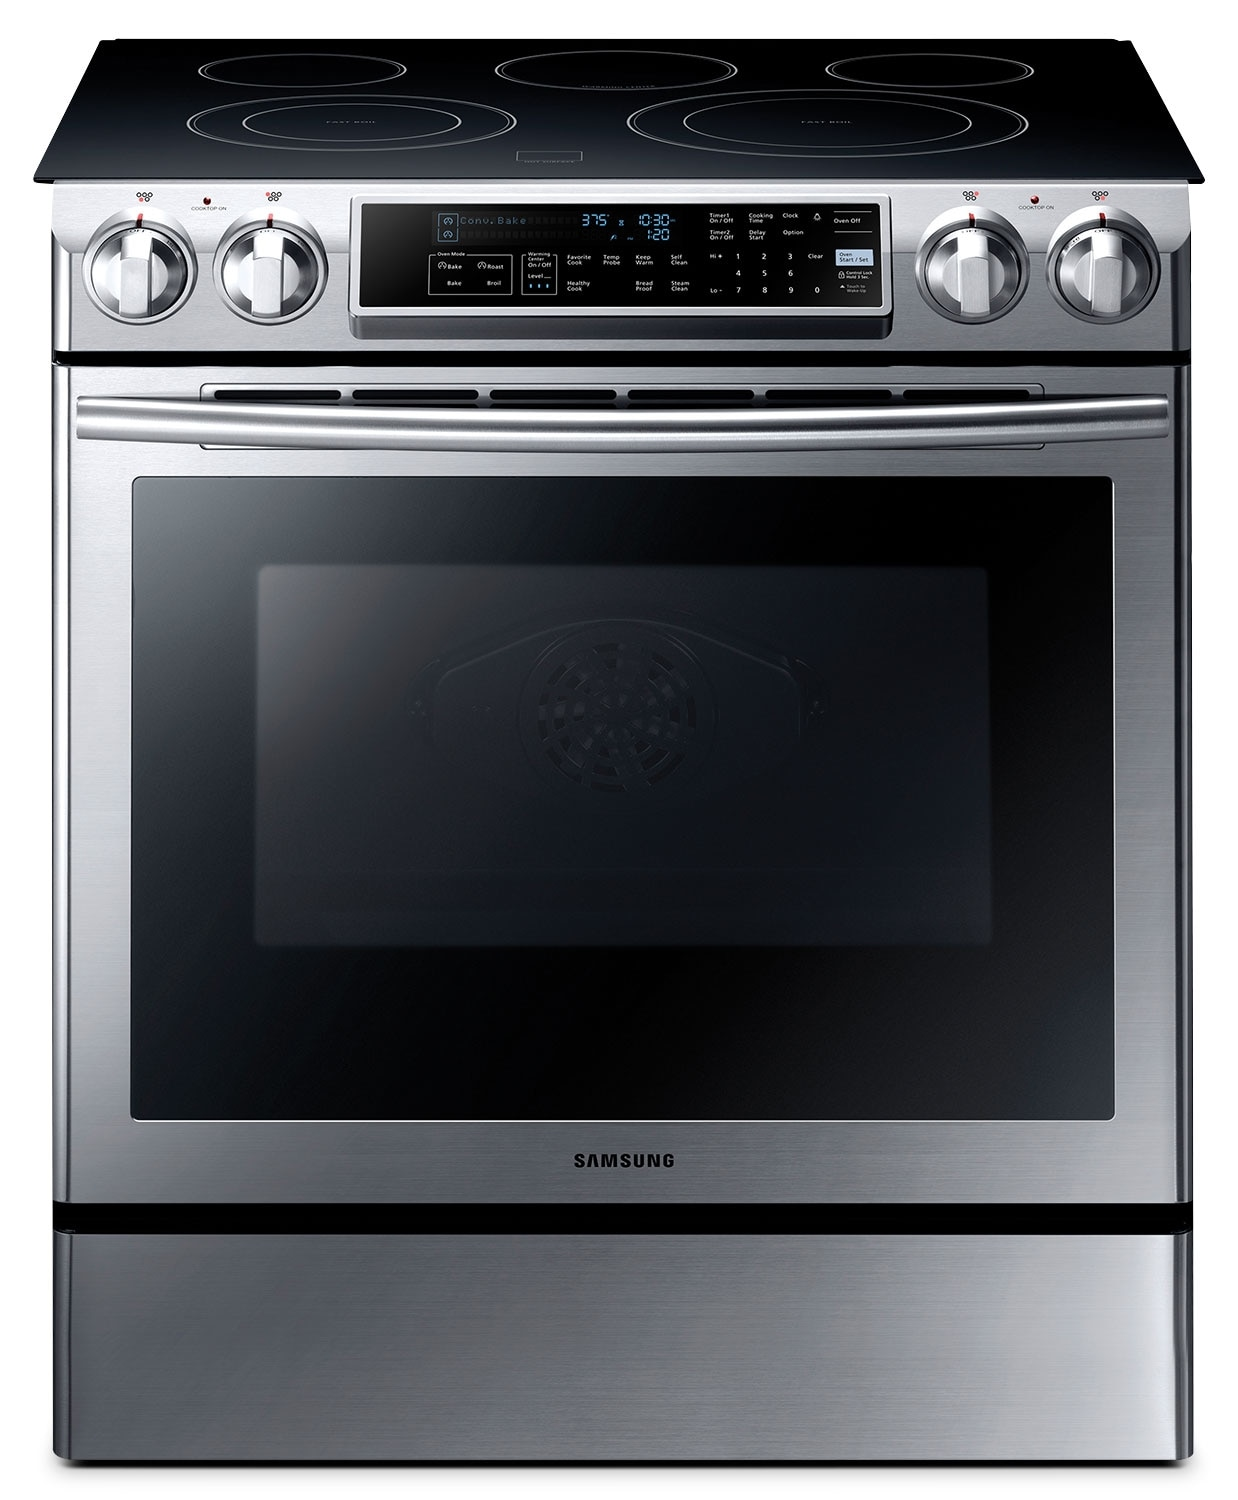 Cooking Products - Samsung 5.8 Cu. Ft. Slide-In Electric Range - Stainless Steel